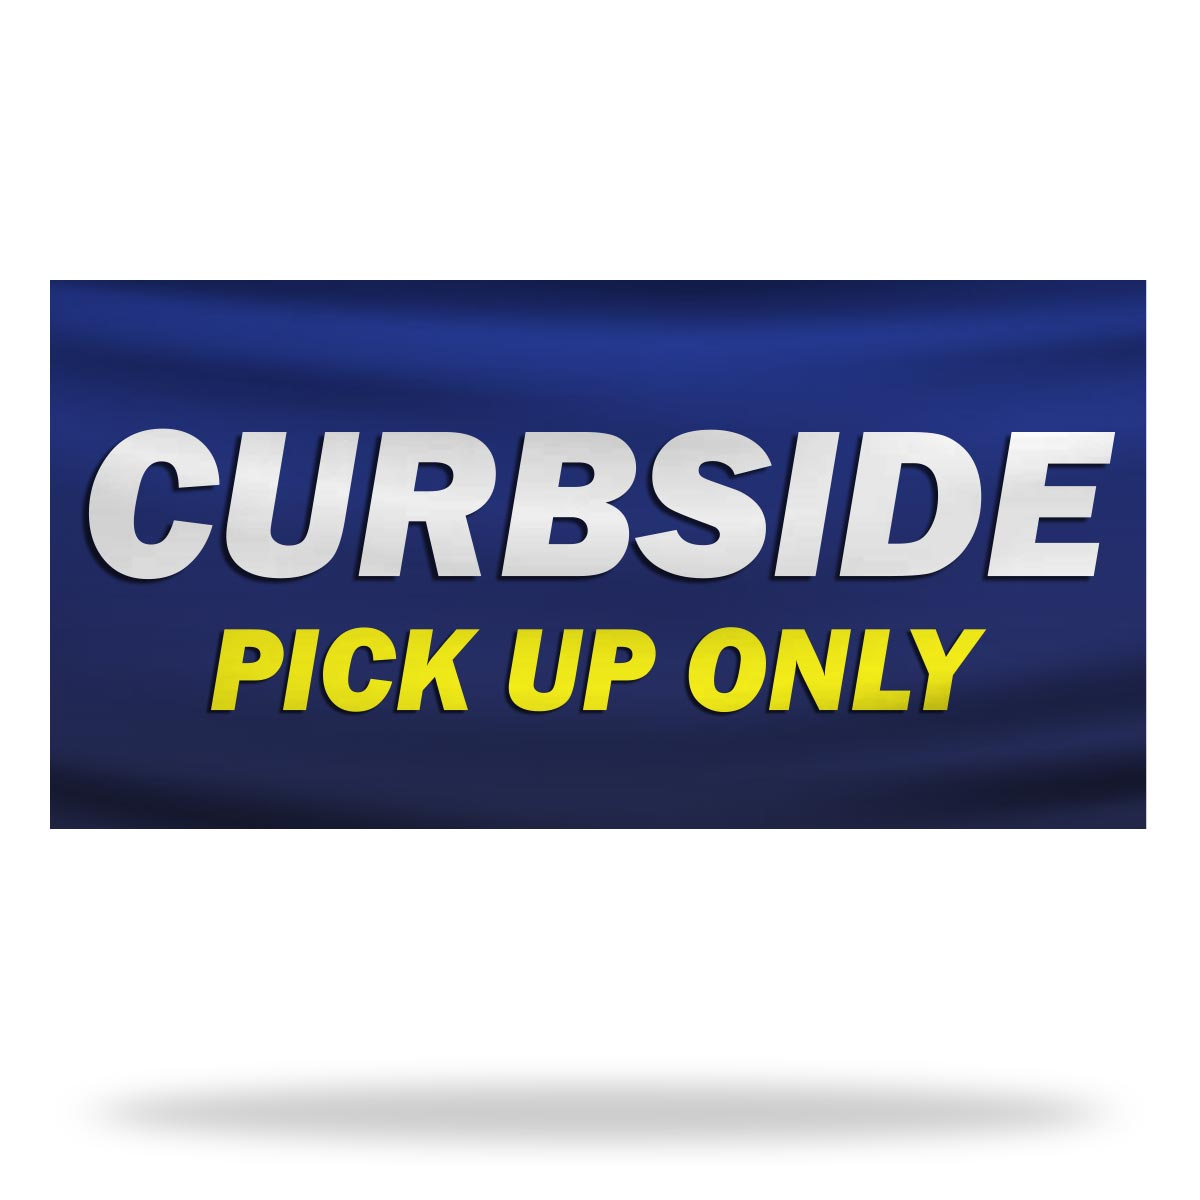 Curbside Pickup Flags & Banners Design 02